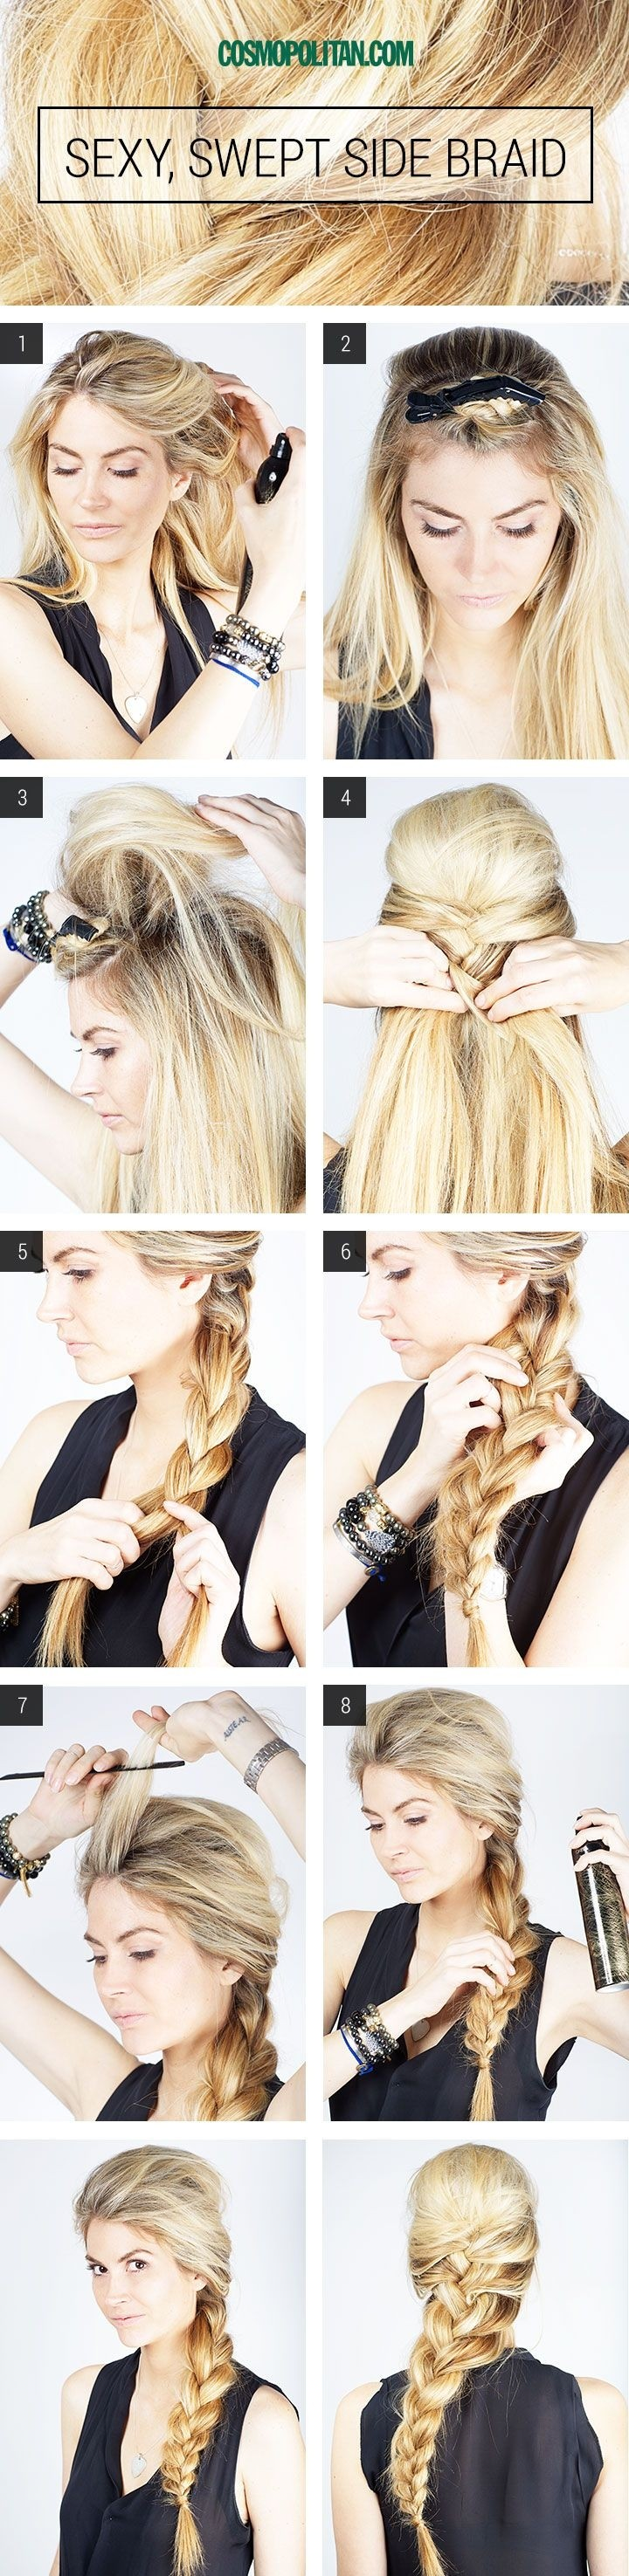 Perfect Side Braid Ideas for Work